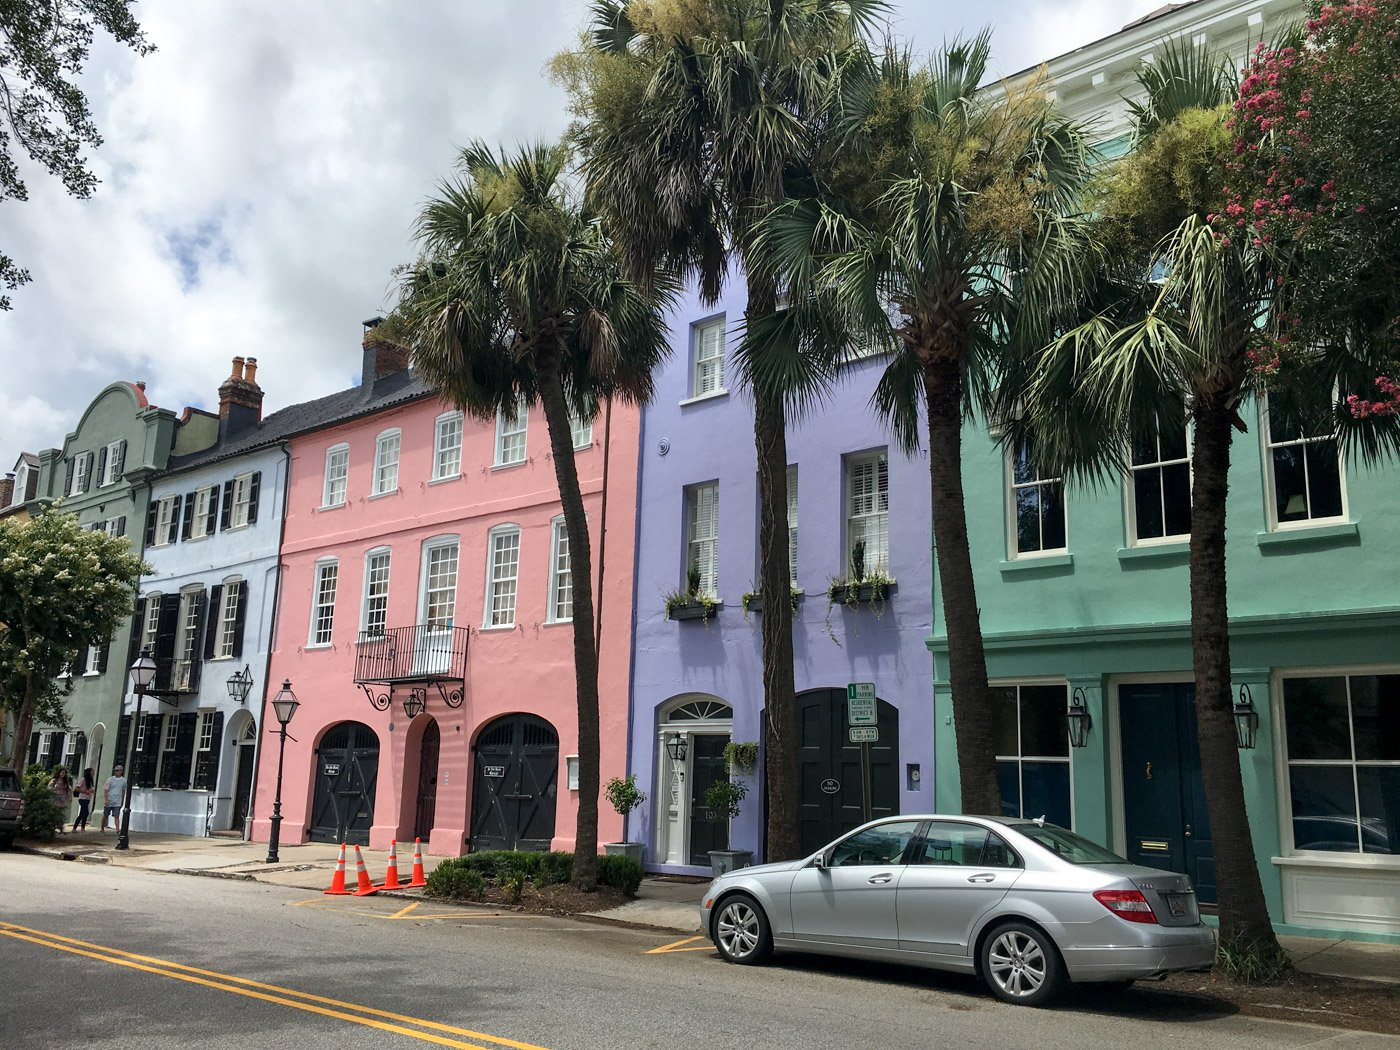 One day is just enough to whet your appetite for this charming southern city. If you only have one day in Charleston, here's what you just can't miss.